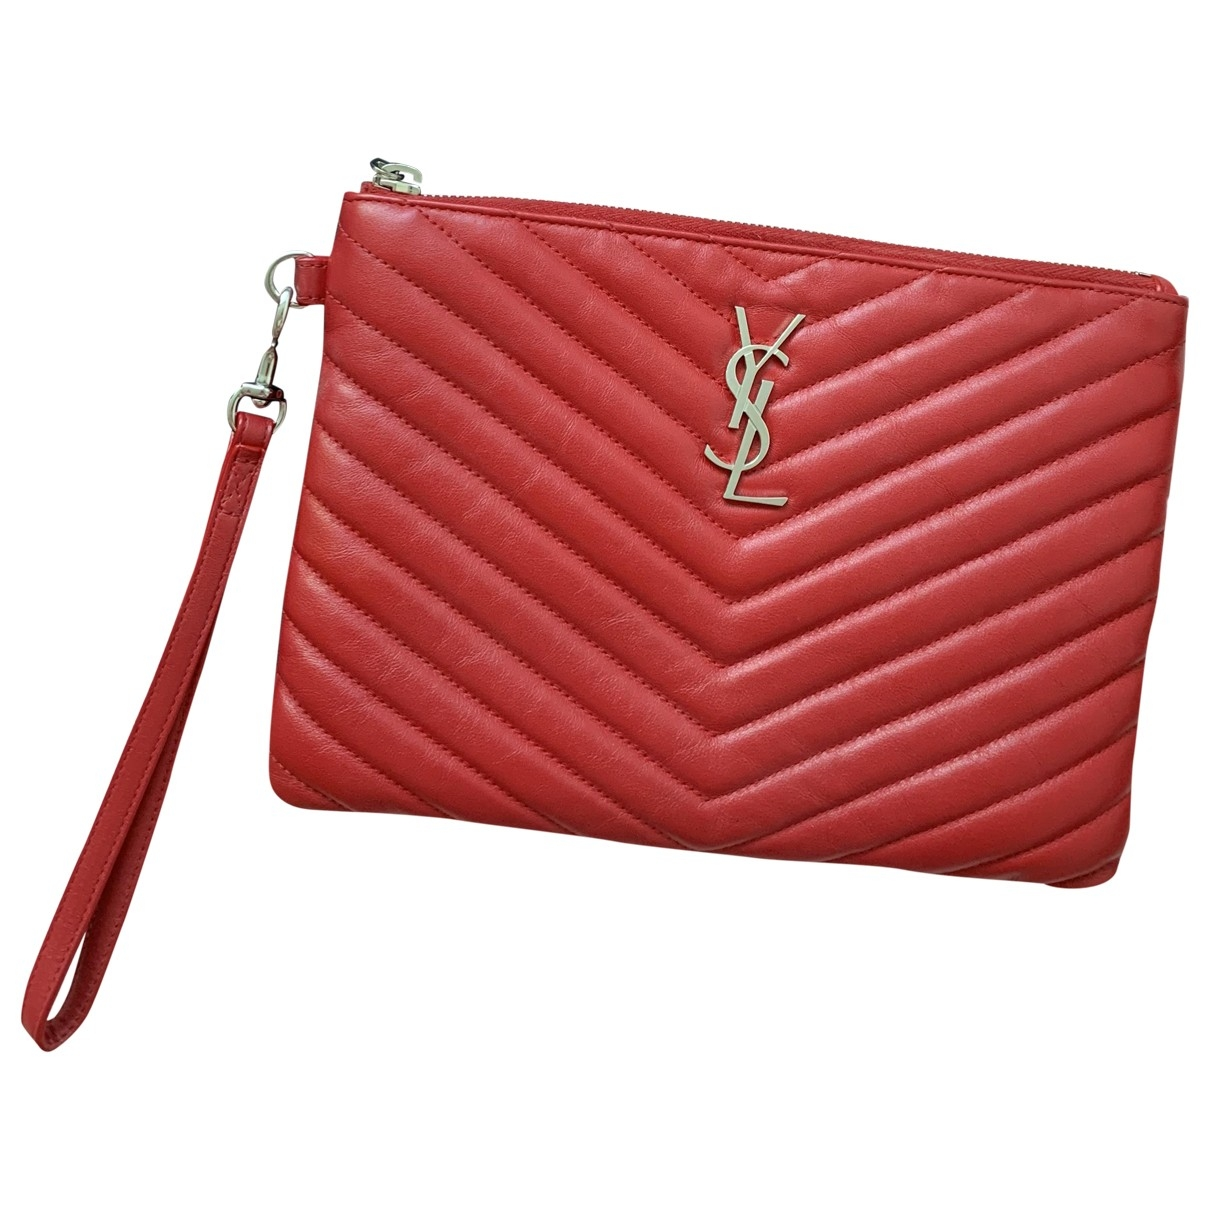 Saint Laurent New Jolie Clutch in  Rot Leder